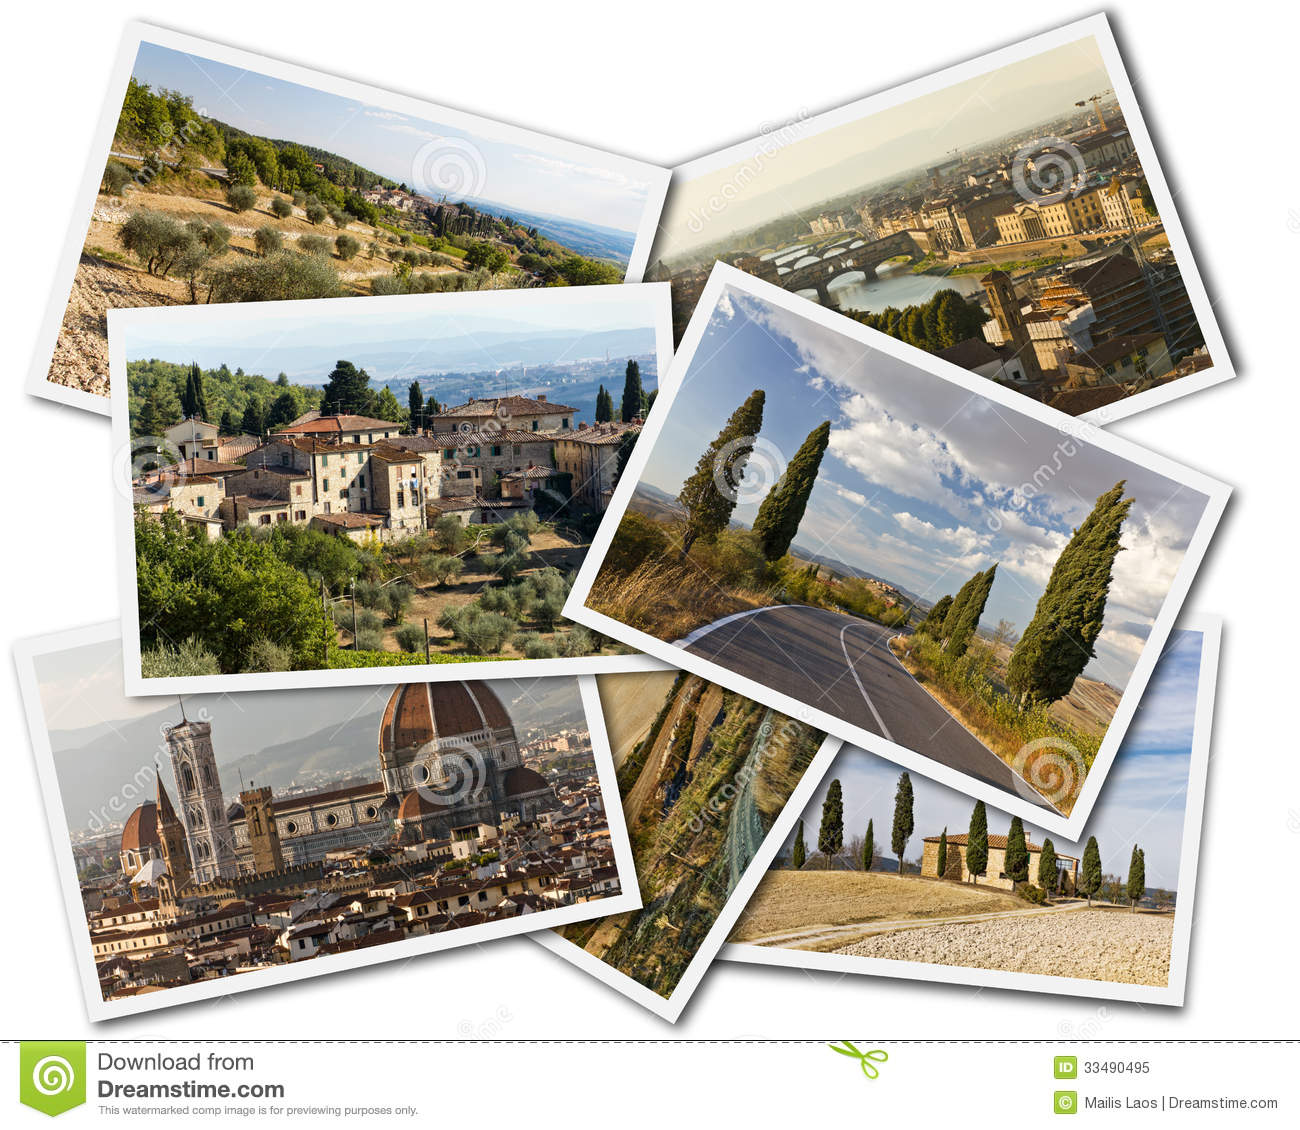 Download Tuscany Collage stock image. Image of assortment, memories - 33490495